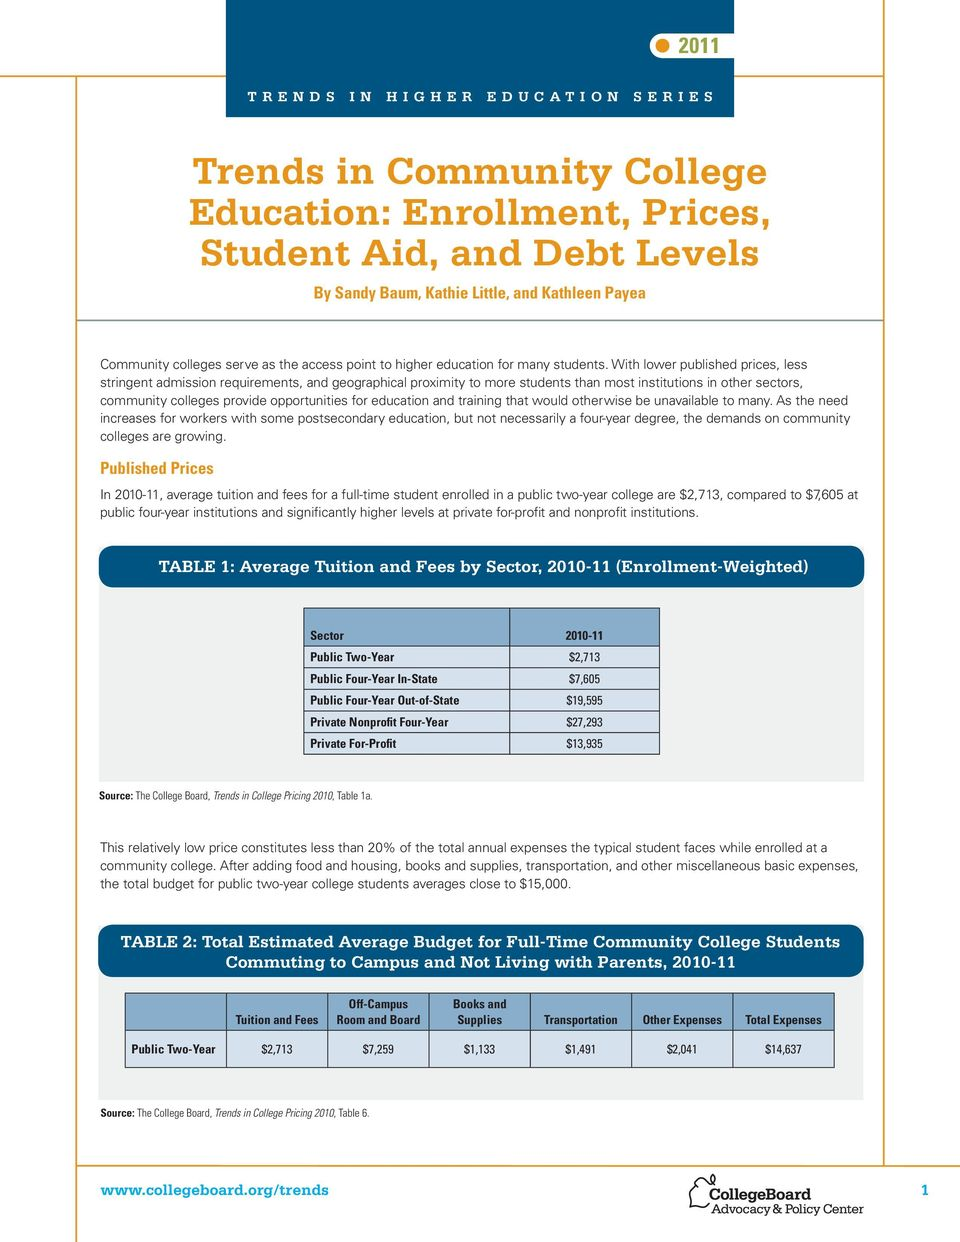 With lower published prices, less stringent admission requirements, and geographical proximity to more students than most institutions in other sectors, community colleges provide opportunities for